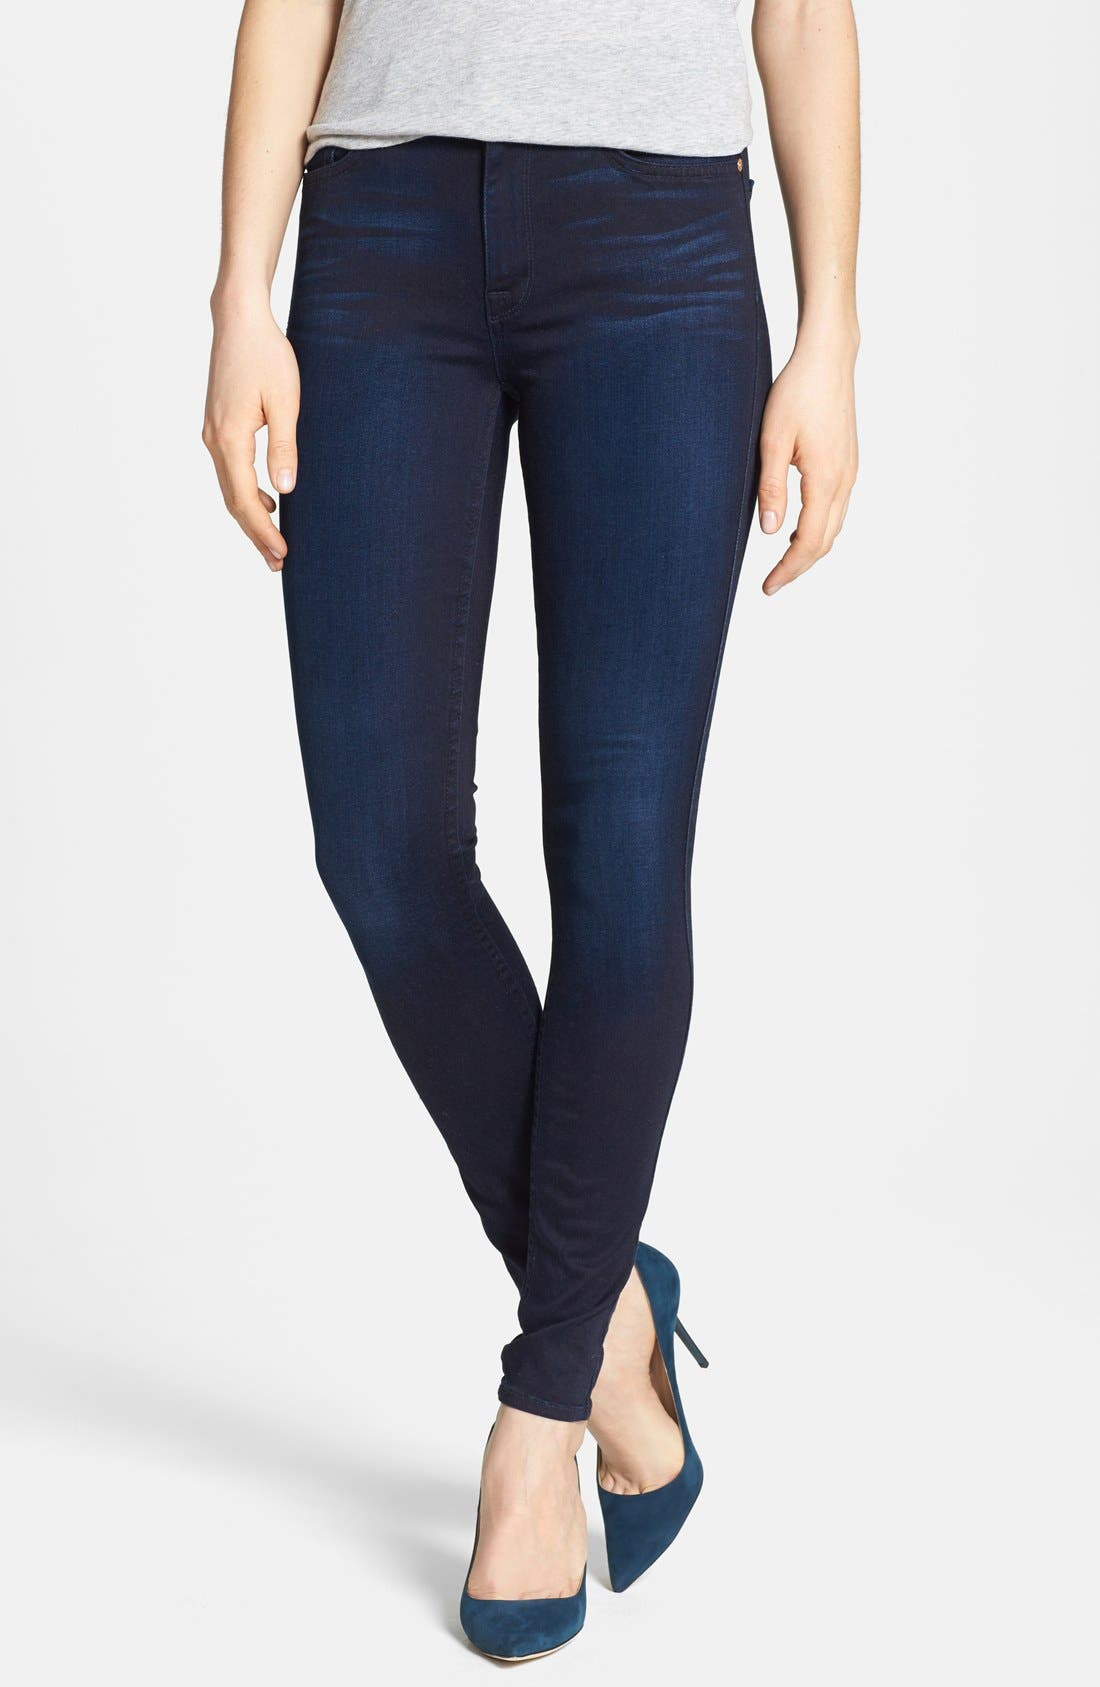 Alternate Image 1 Selected - 7 For All Mankind® High Rise Skinny Jeans (Blue Black Sateen)